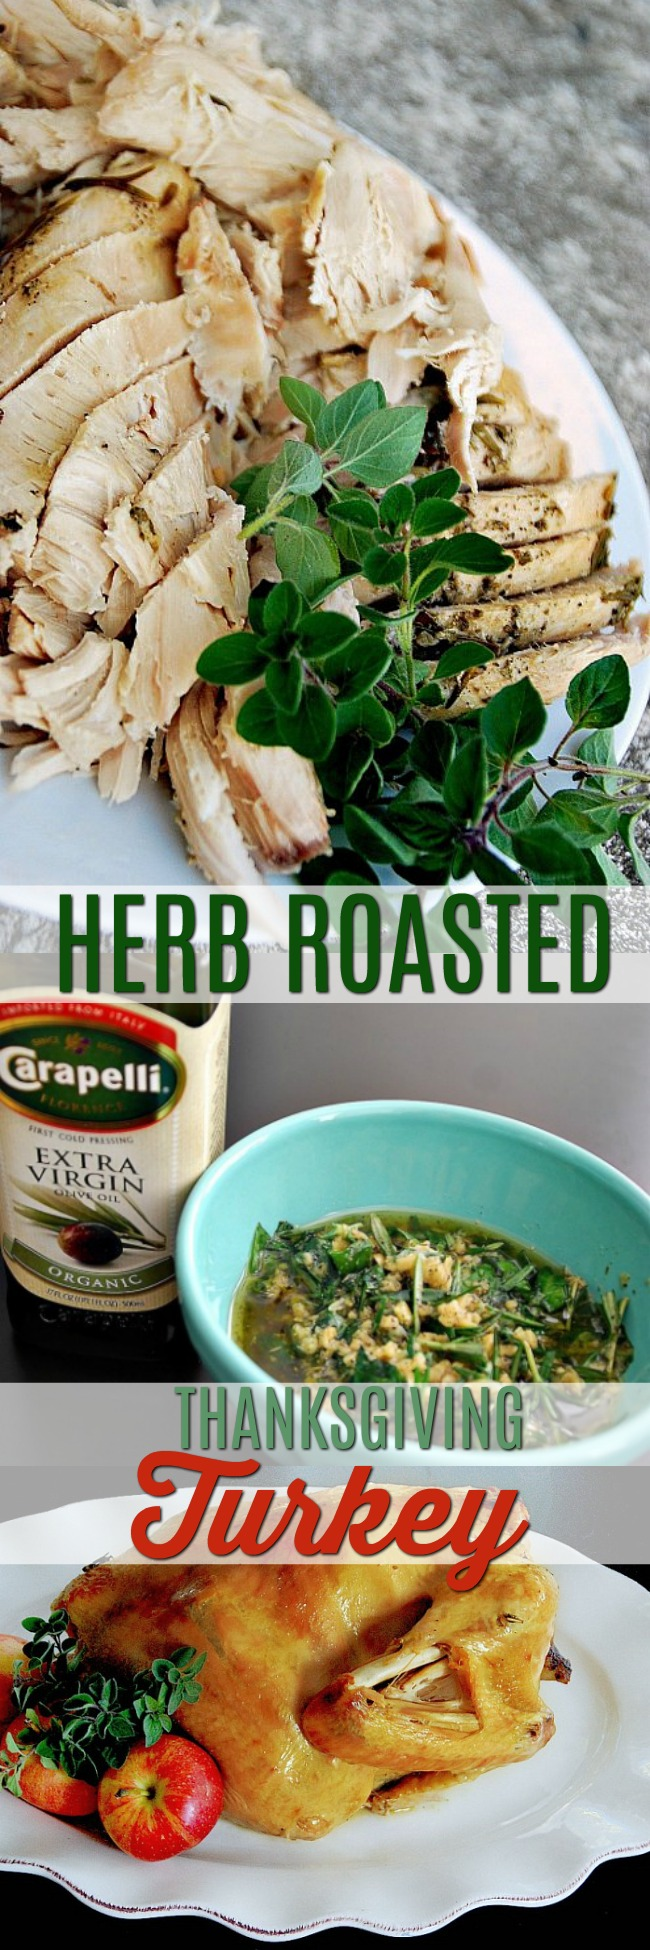 The easiest most flavorful herb-roasted thanksgiving turkey recipe